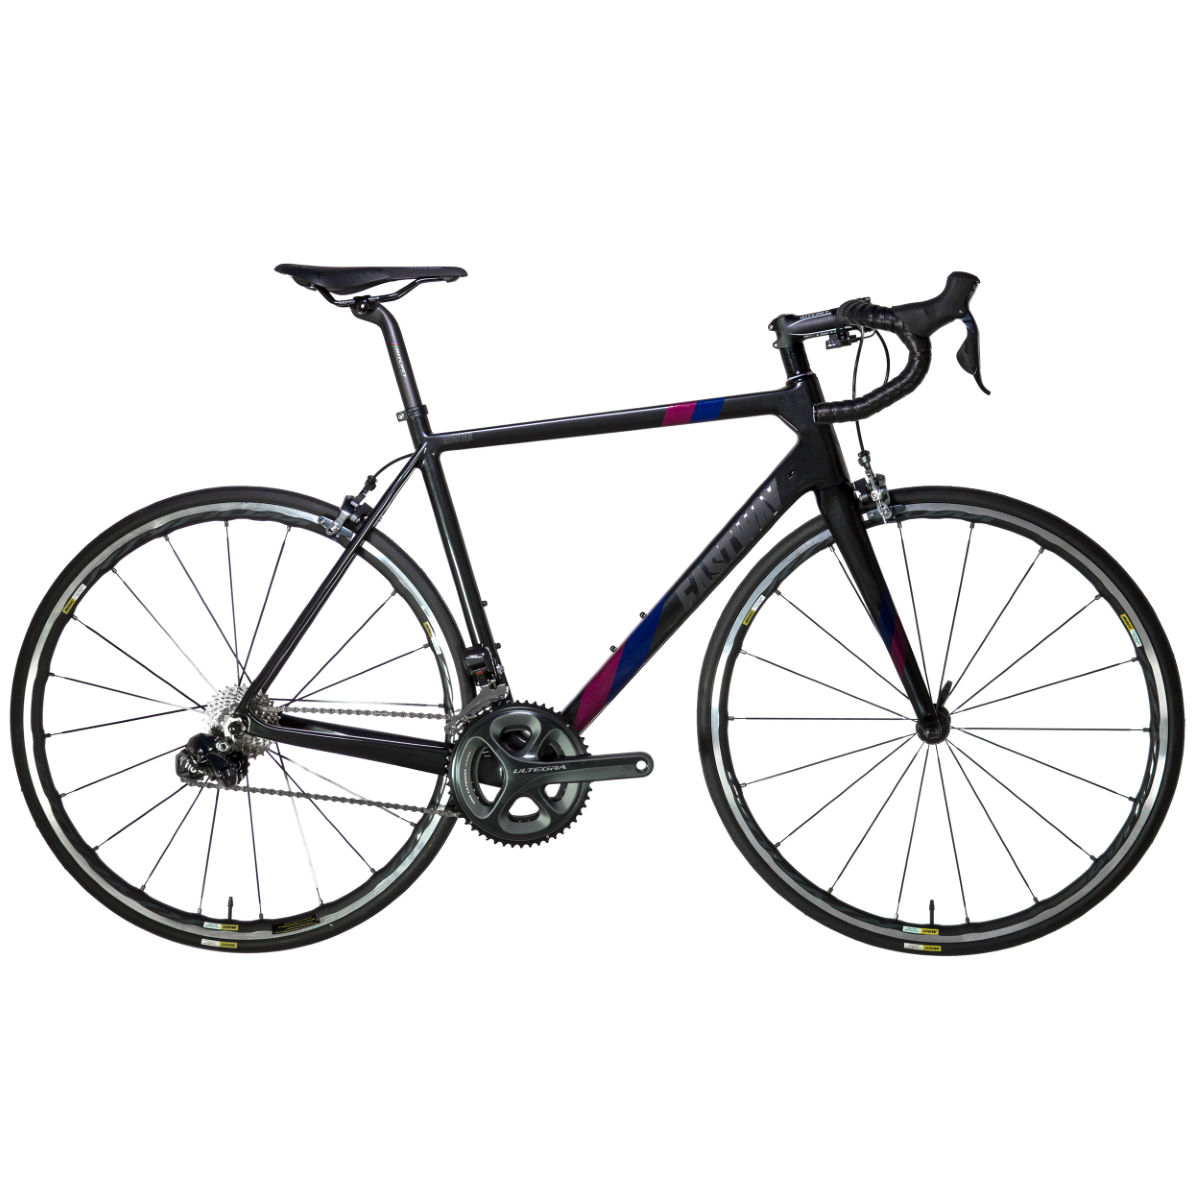 Vélo de route Eastway Emitter R1 (Ultegra Di2, 2017) - 60cm Stock Bike Black/Claret/Royal Vélos de route